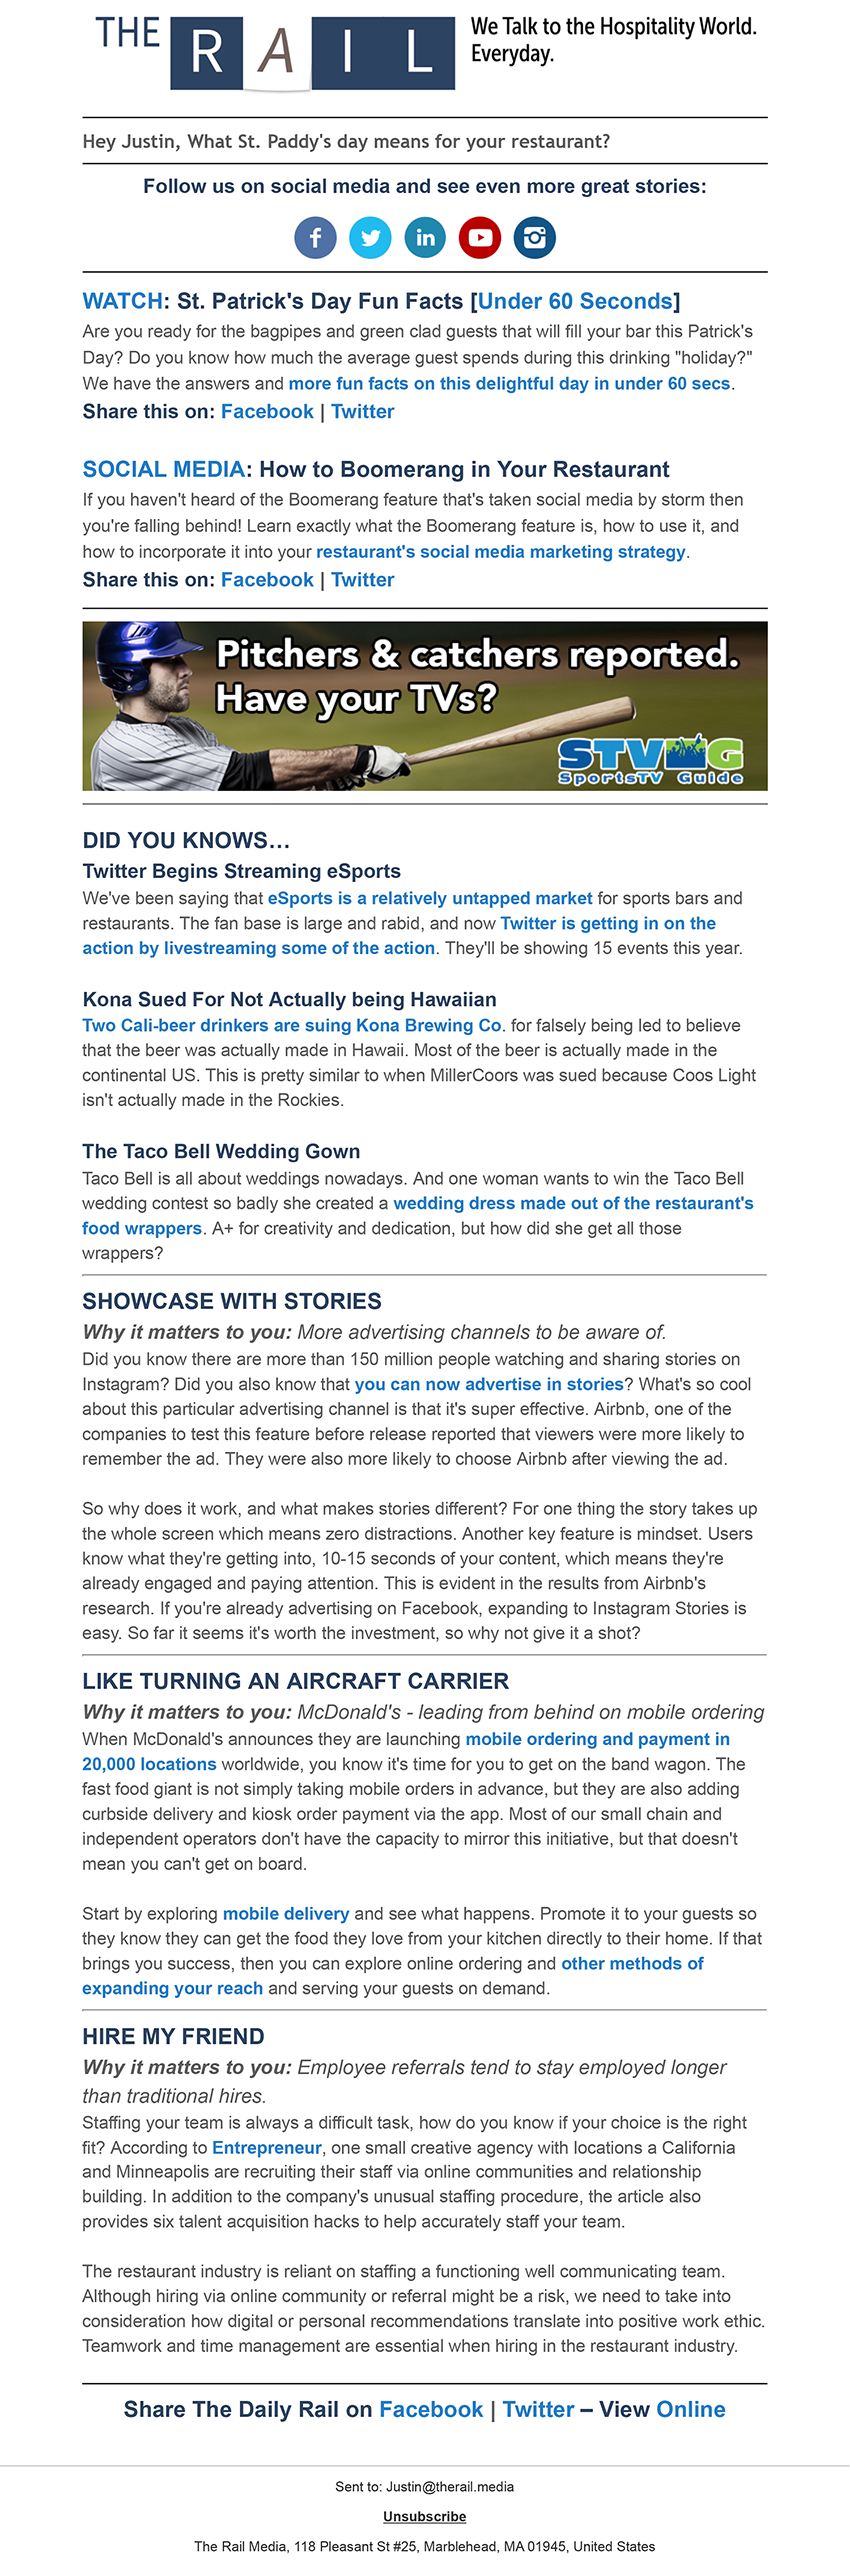 Sample  Daily Rail  email.